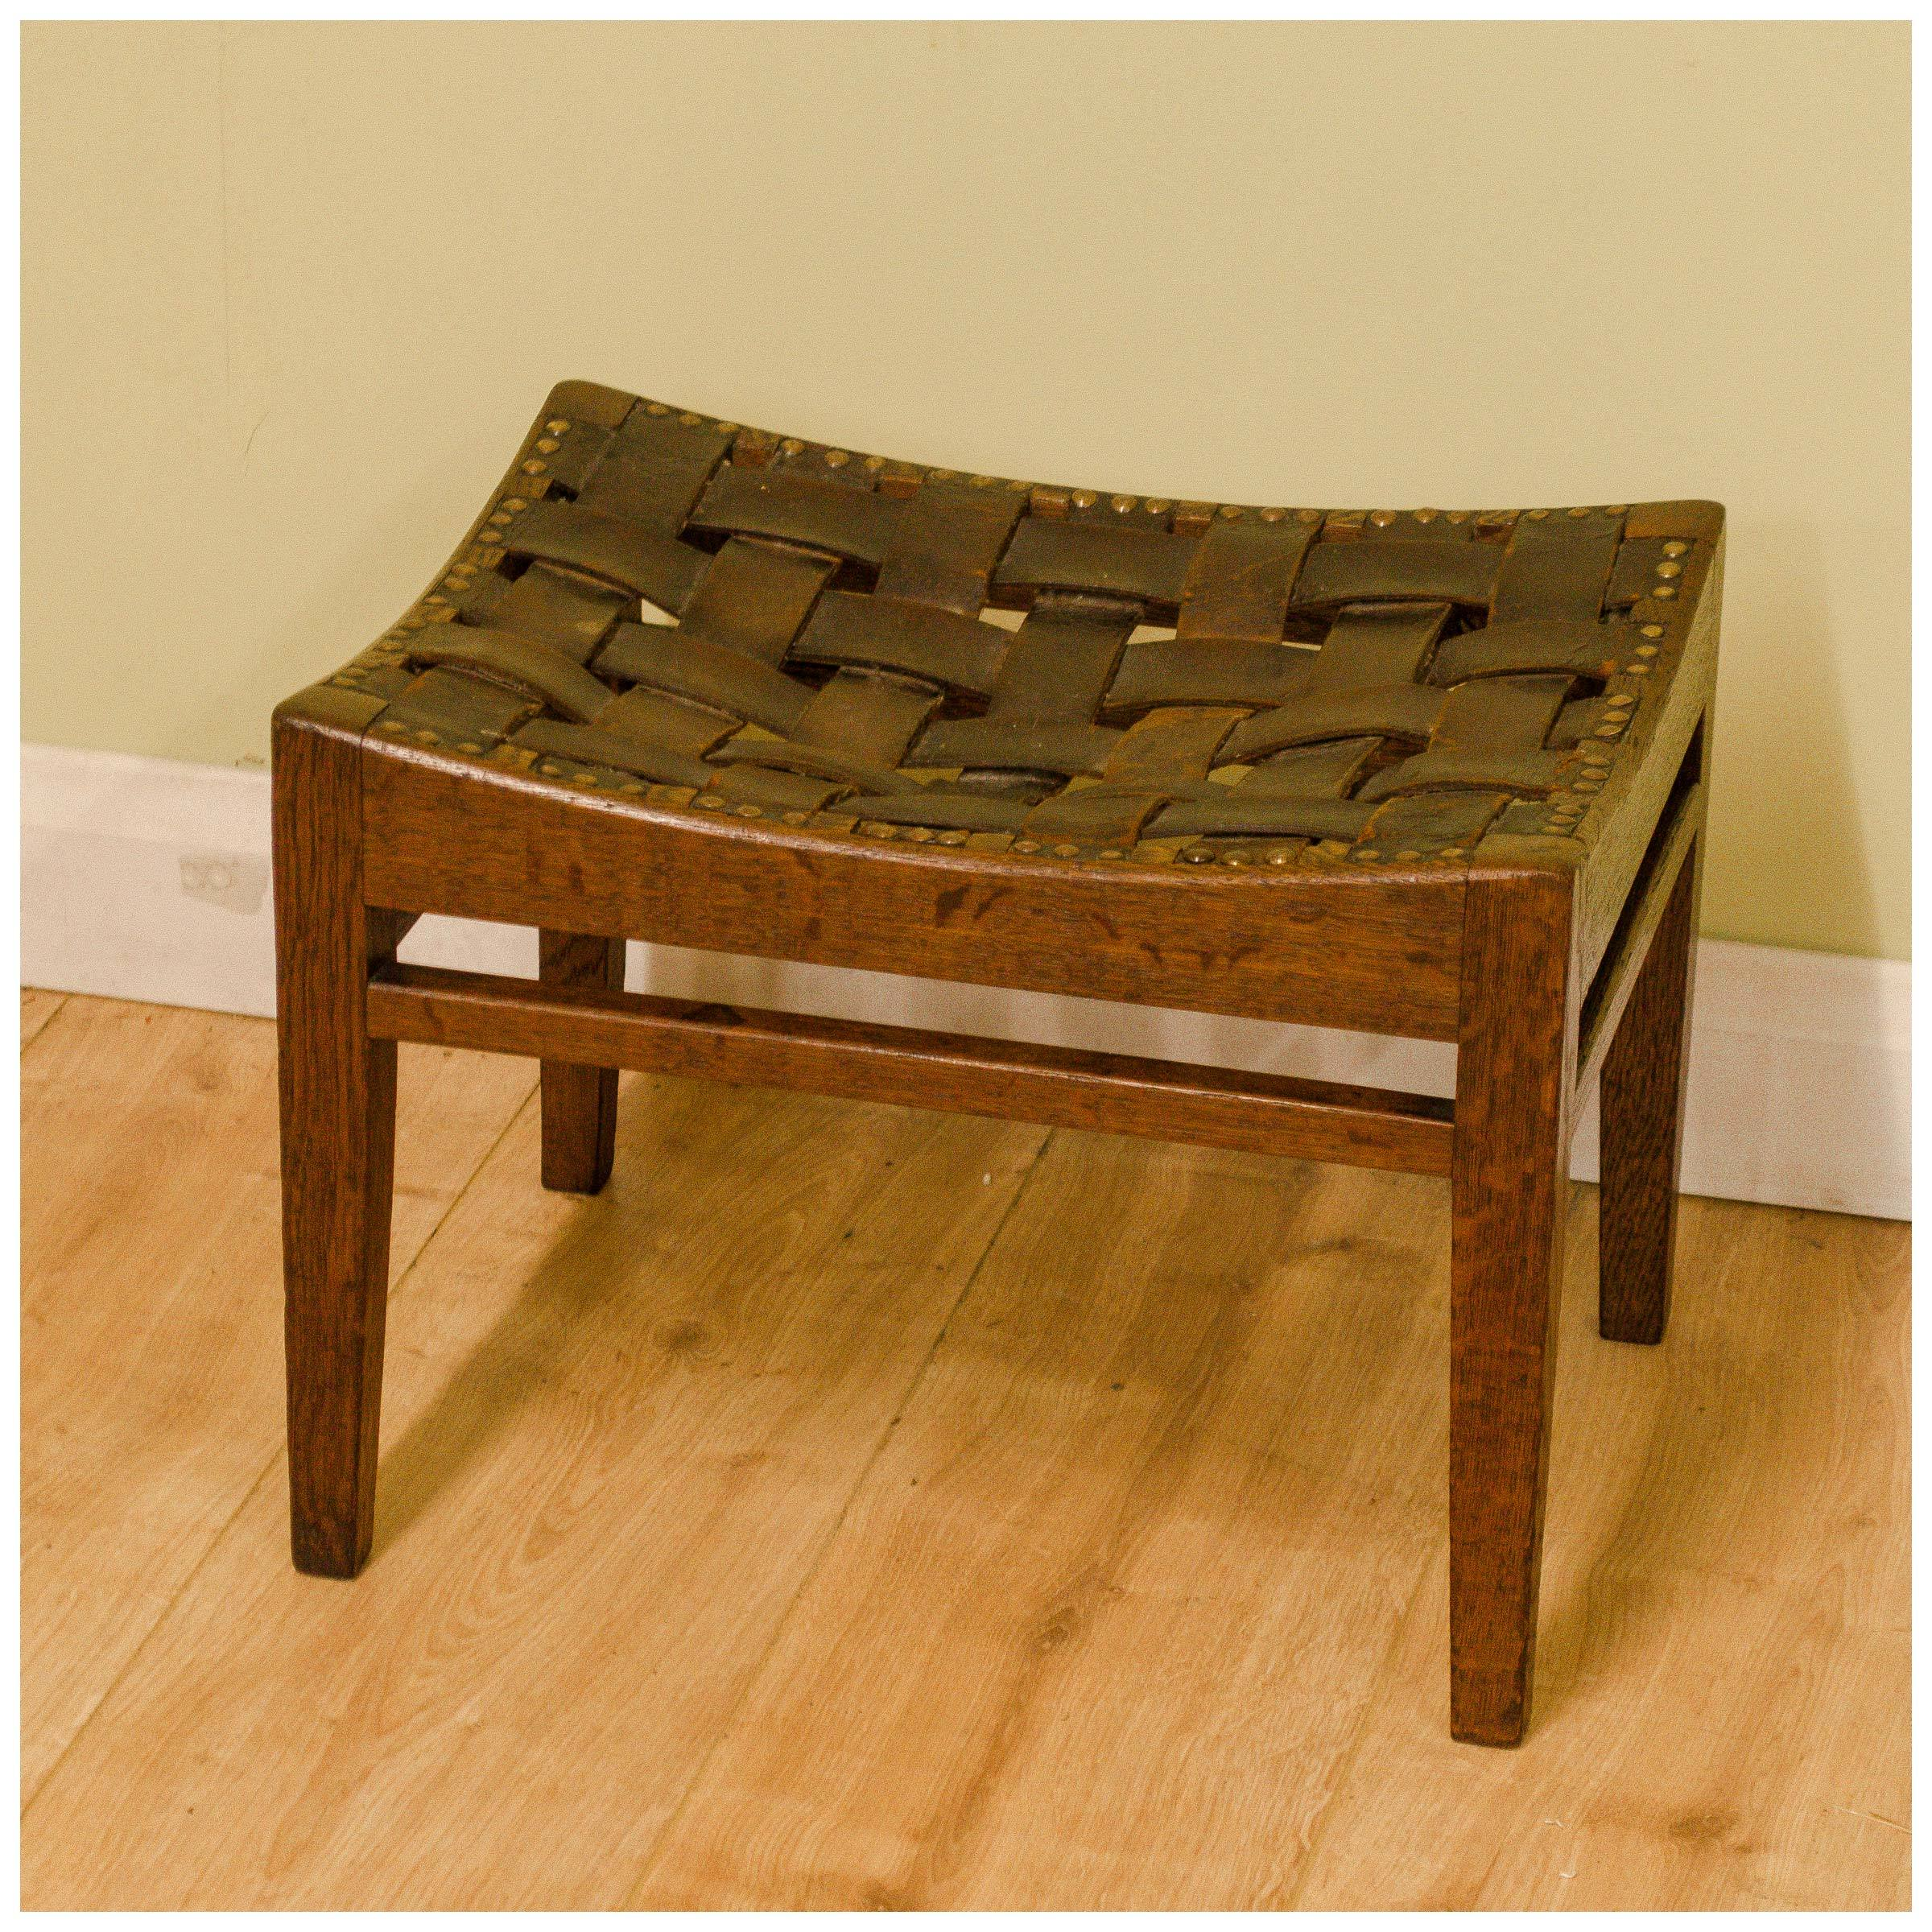 arts-crafts-oak-leather-stool-by-arthur-w-simpson-the-handicrafts-kendal-b0020129a.jpg